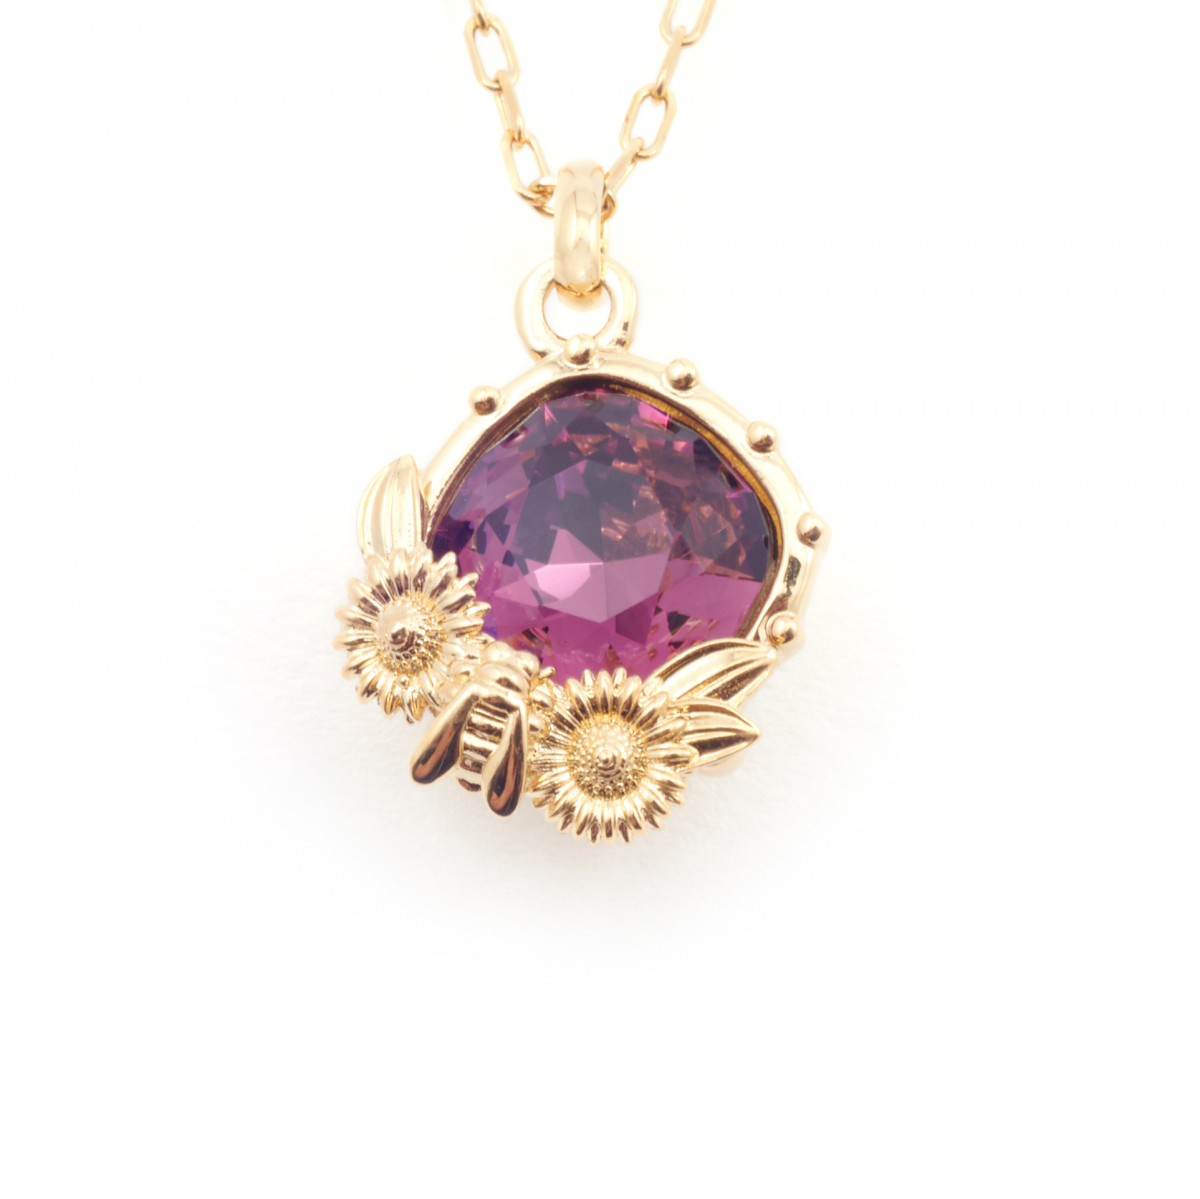 Birthstone Necklace - February